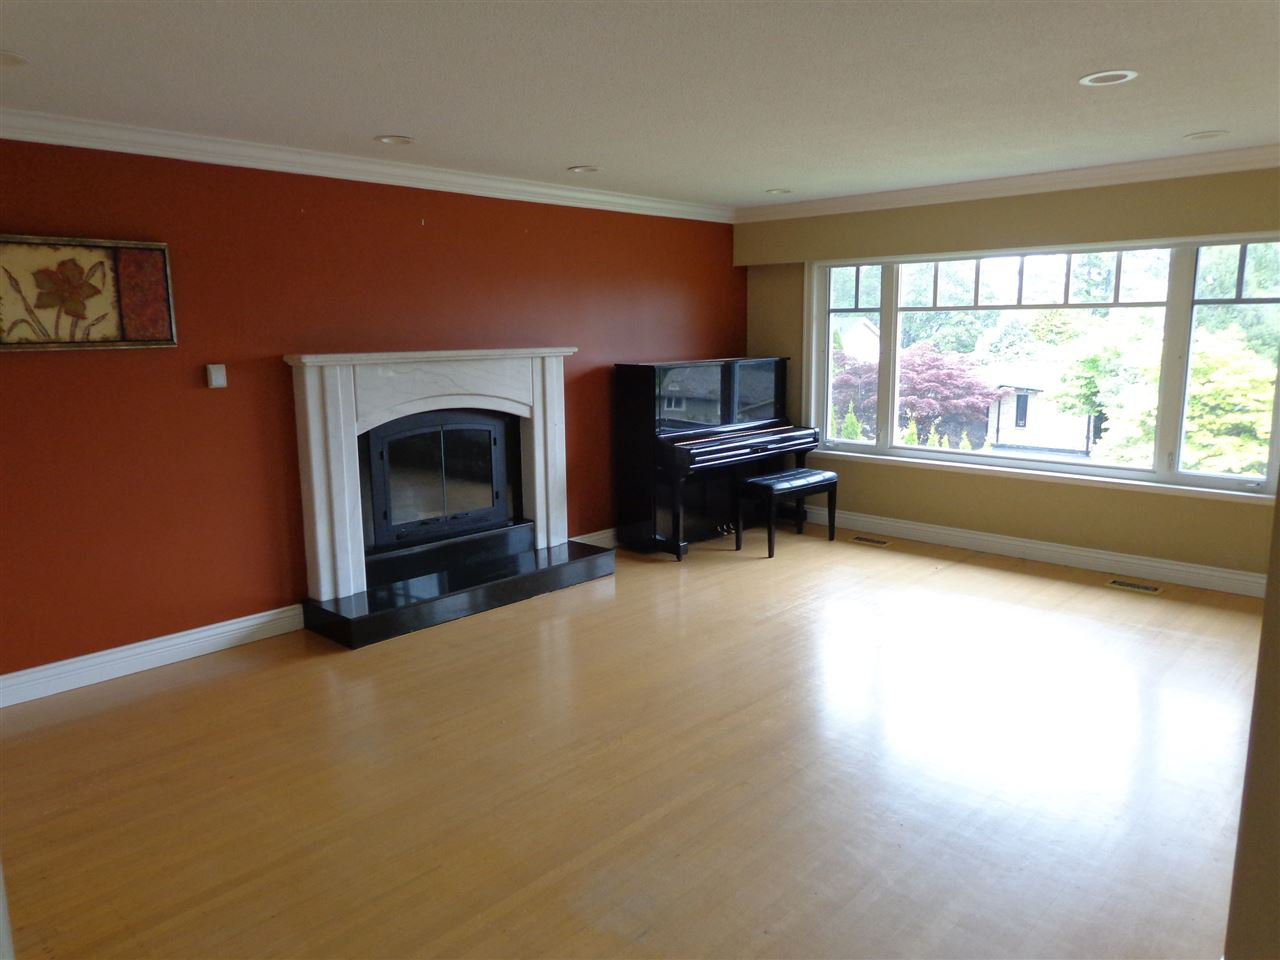 Photo 4: Photos: 4210 GLENHAVEN CRESCENT in North Vancouver: Dollarton House for sale : MLS®# R2373969